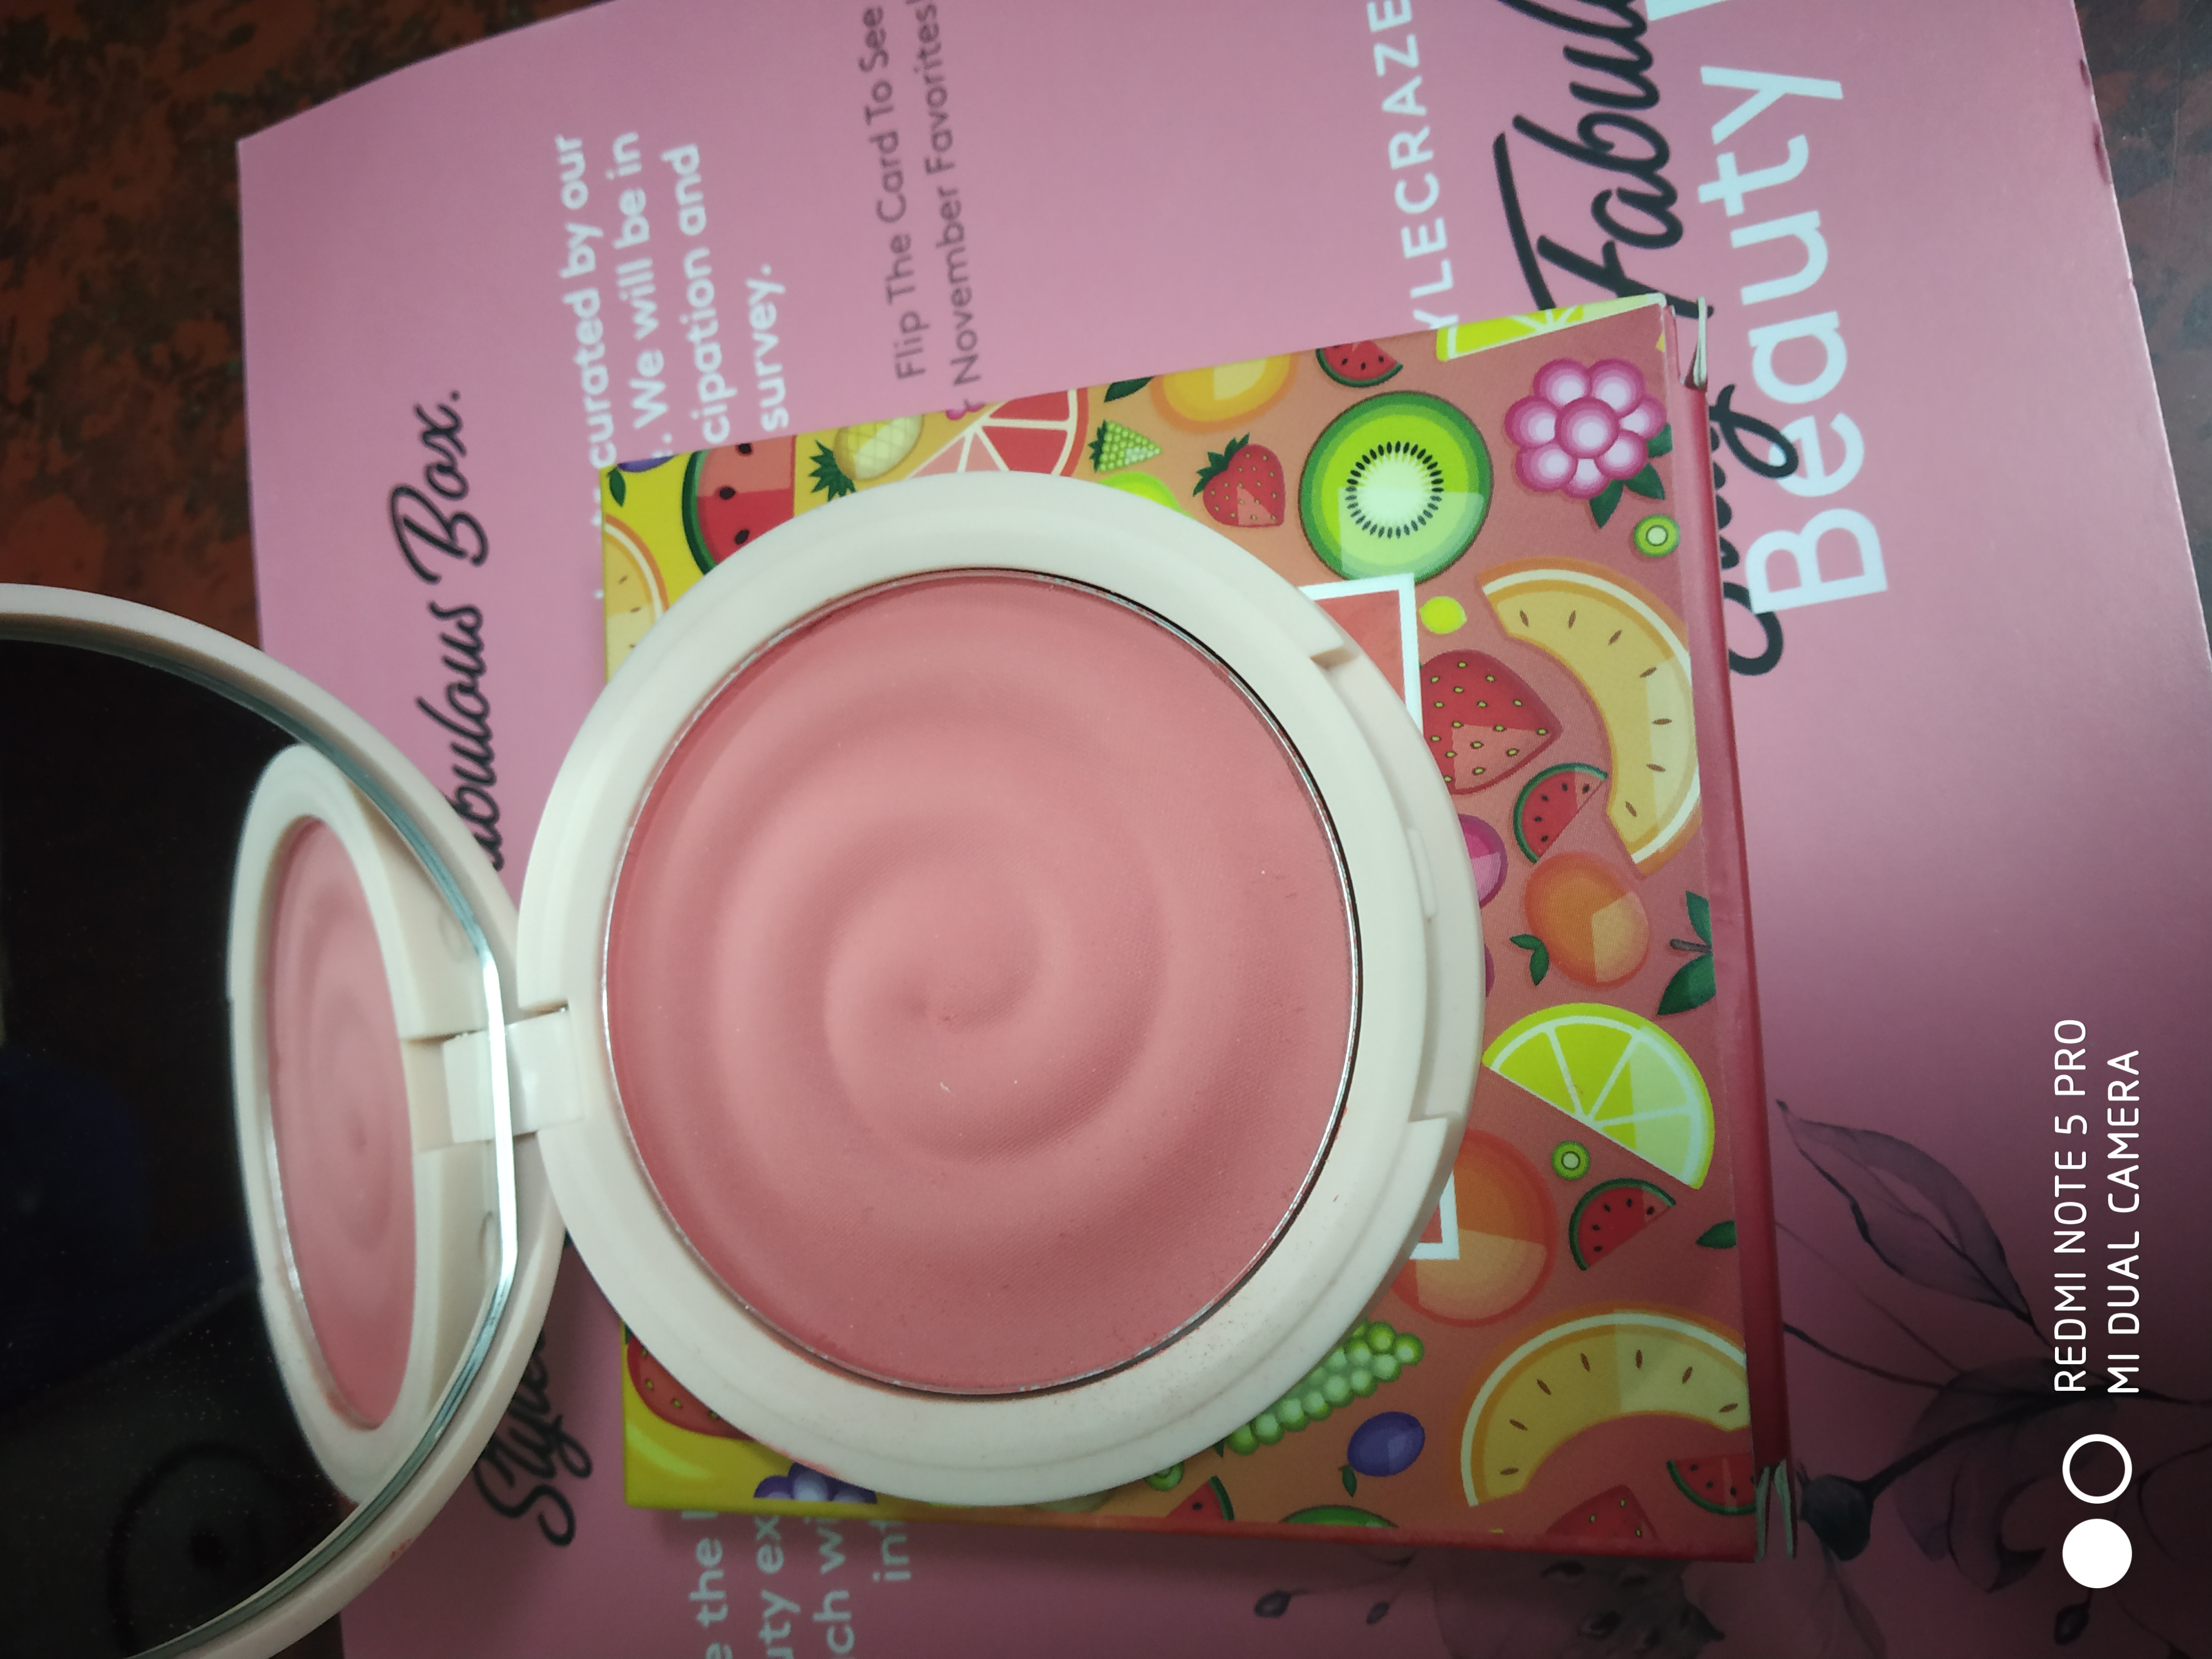 fab-review-Best Blush To keep Blushing-By farha_mirza-1